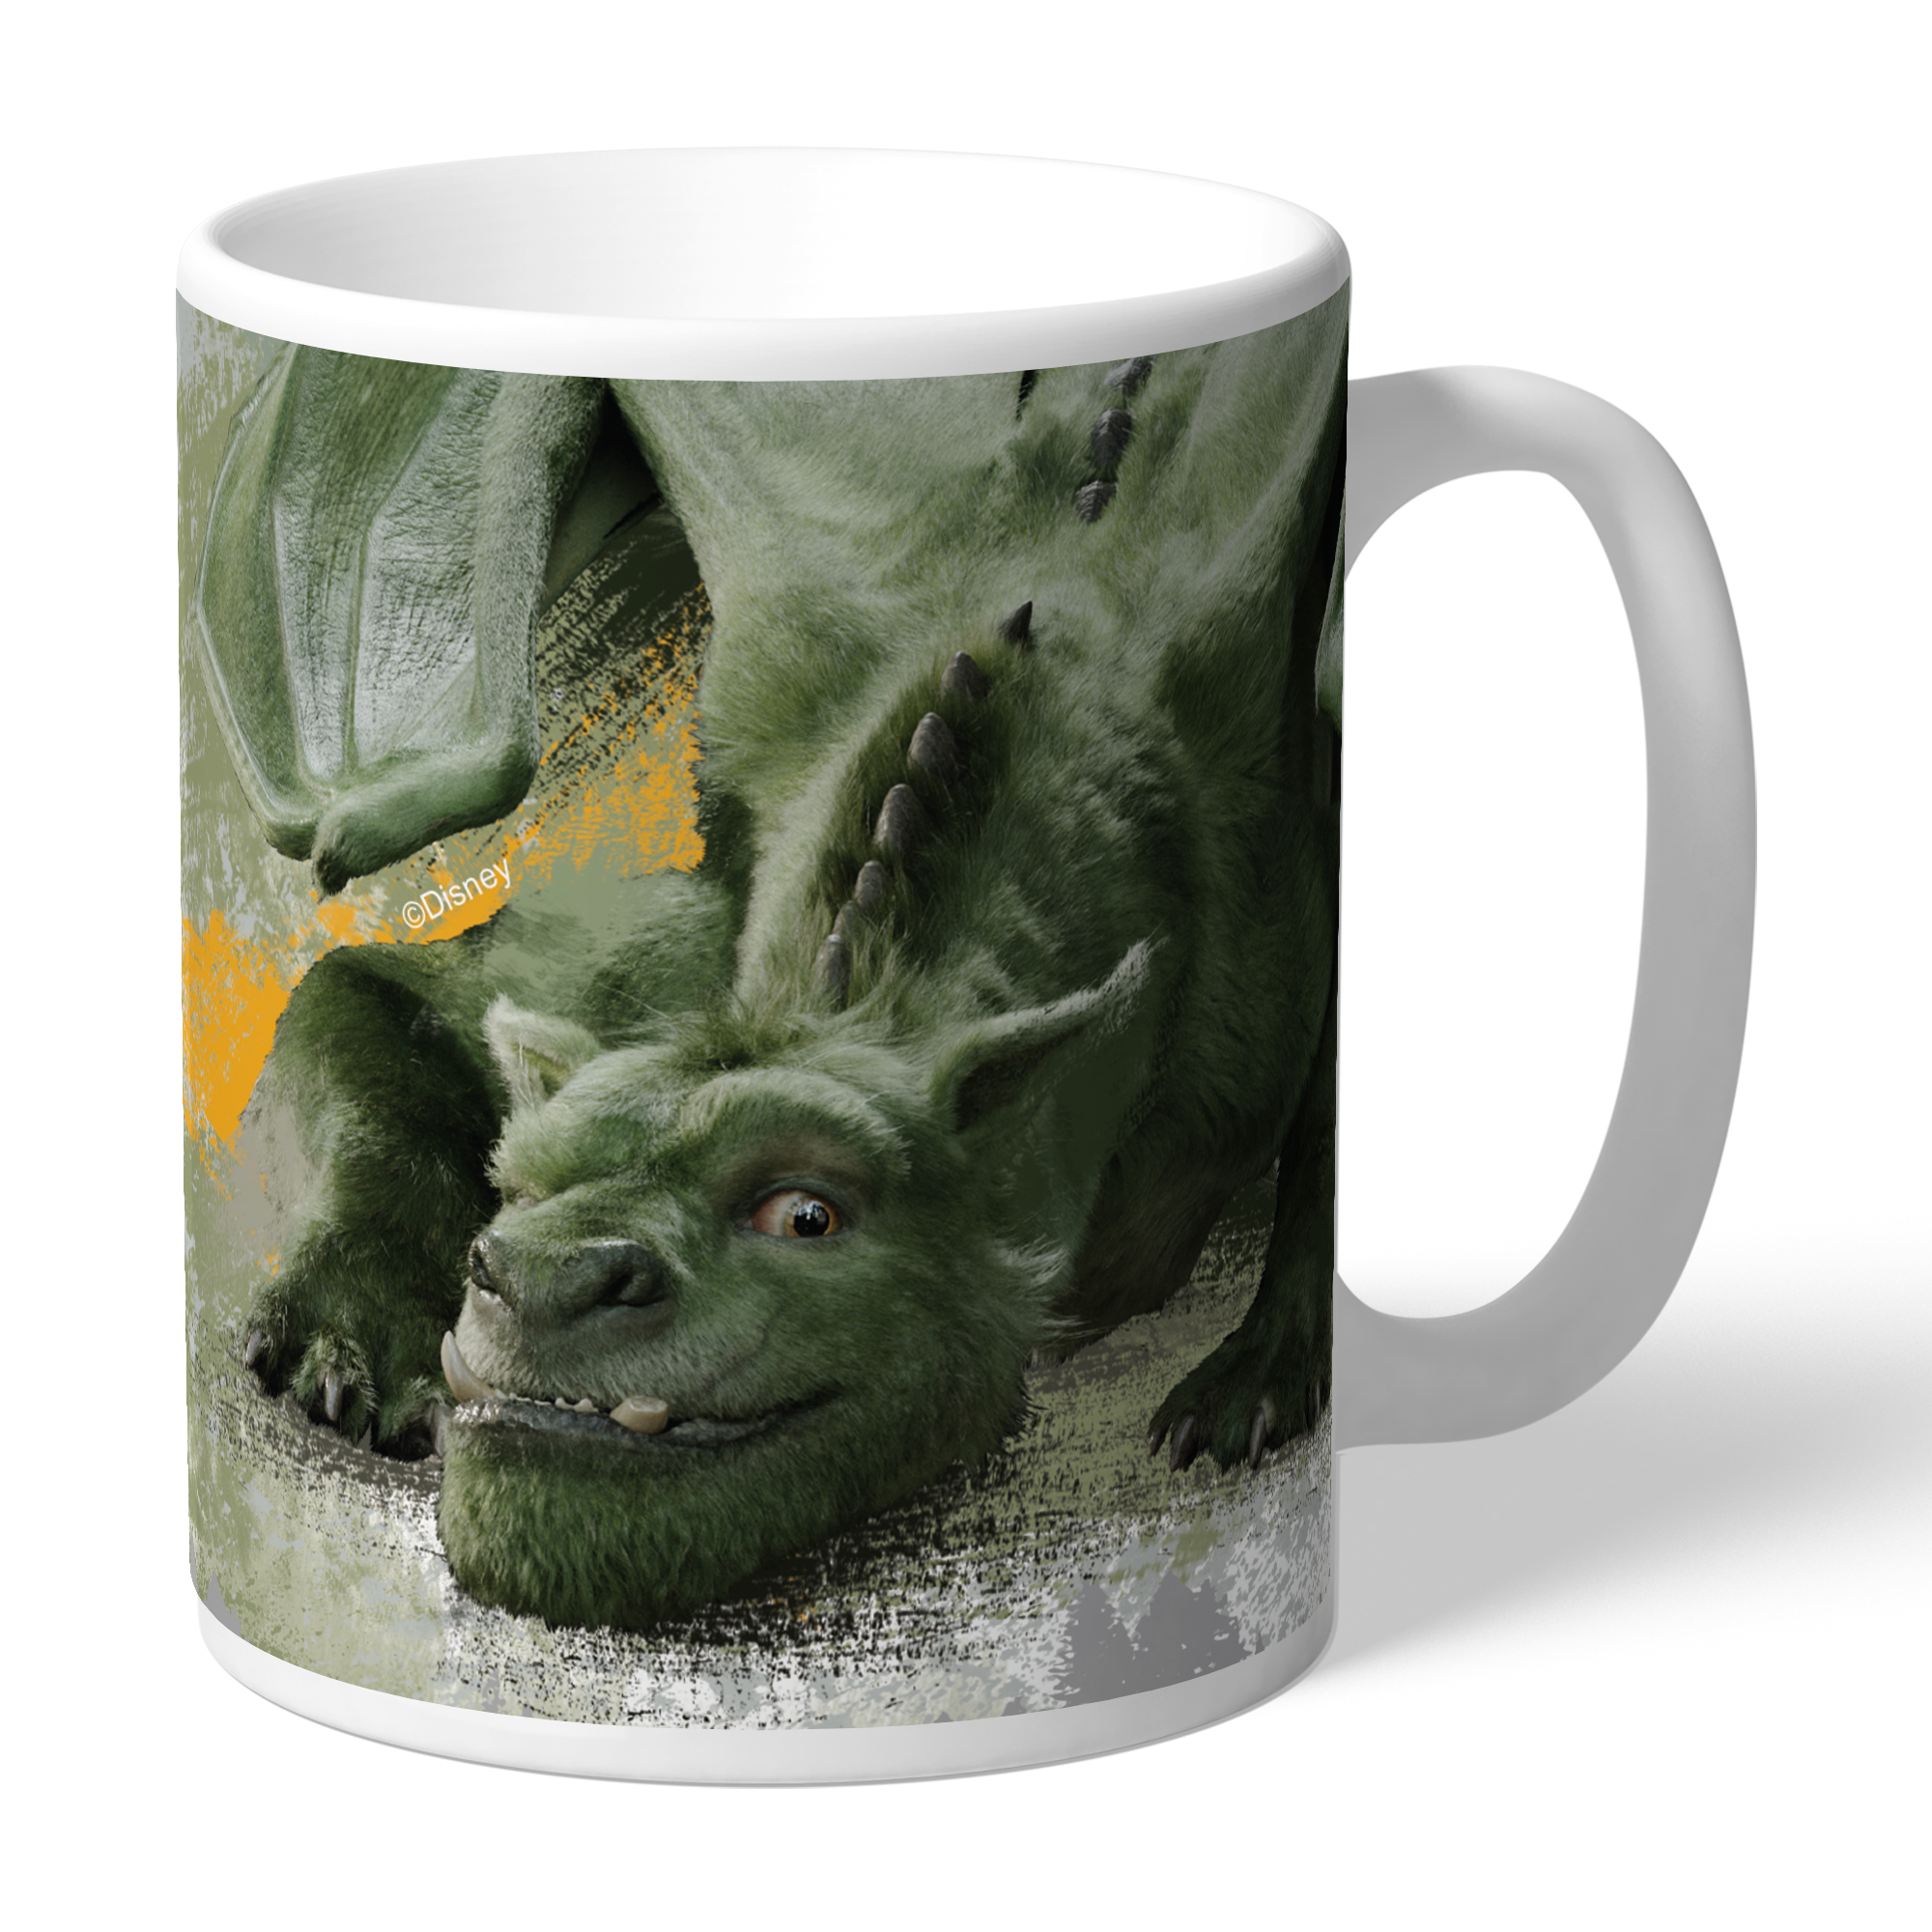 Disney Disney Pete's Dragon Elliot Mug